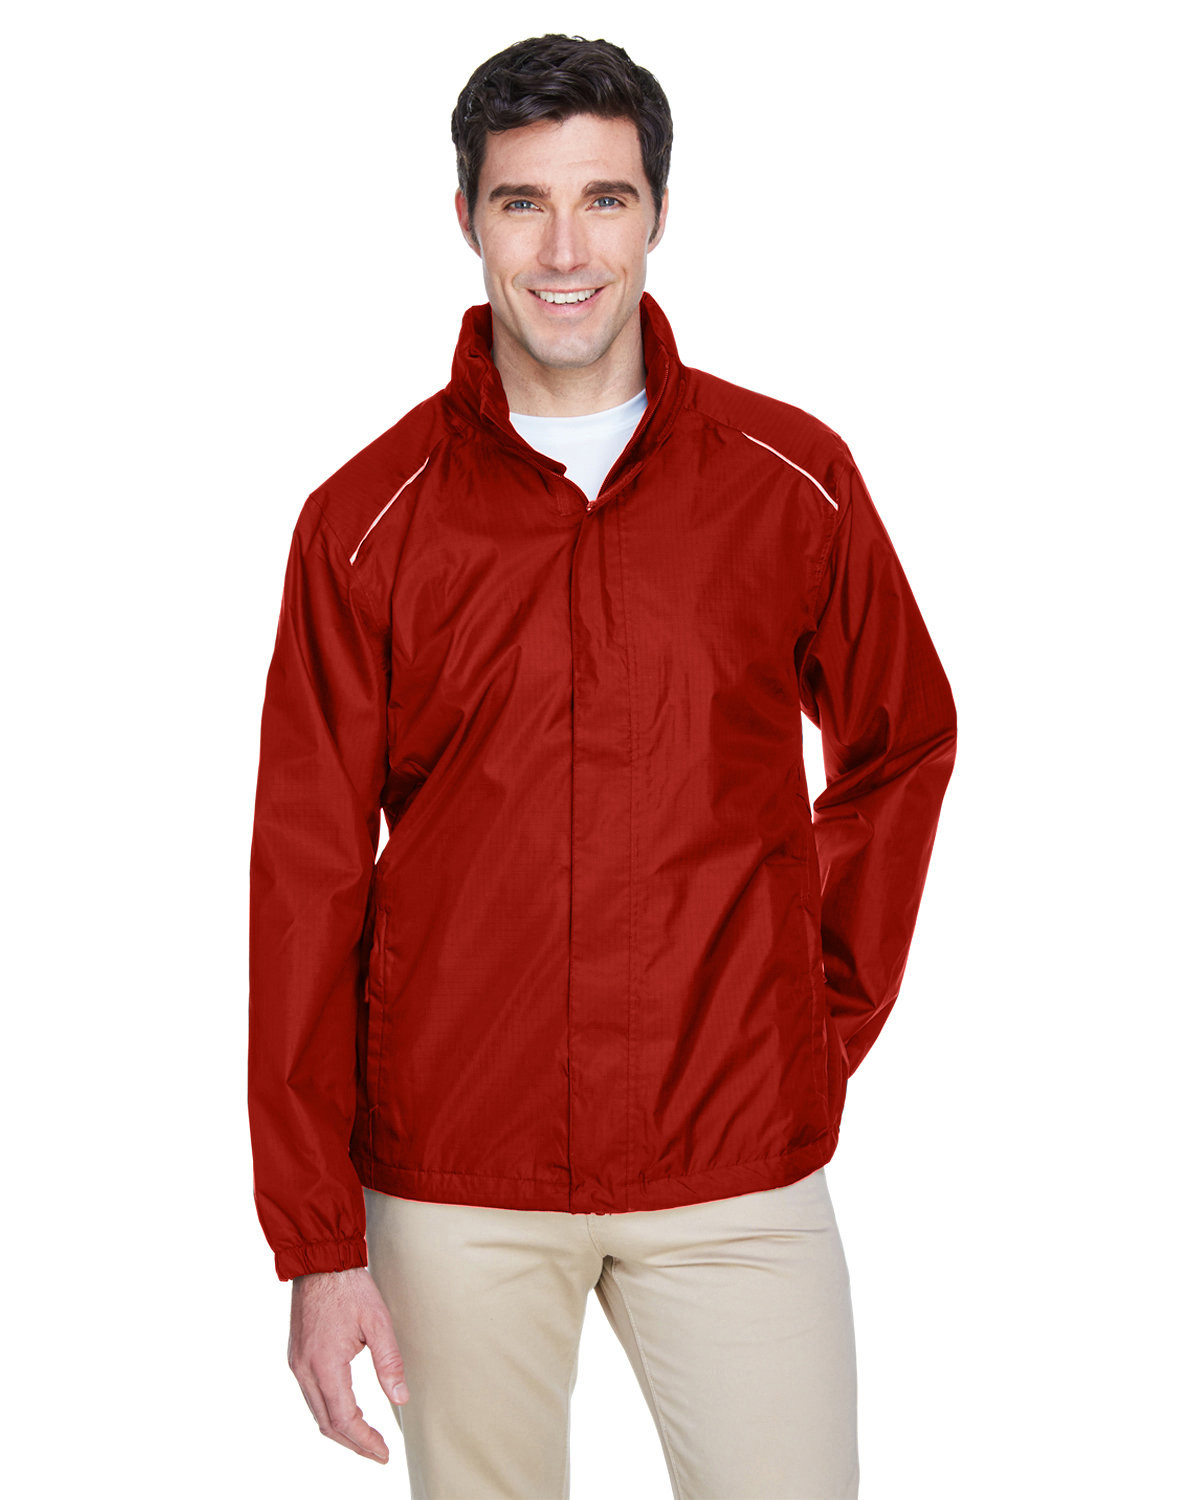 Core 365 Men's Climate Seam-Sealed Lightweight Variegated Ripstop Jacket CLASSIC RED